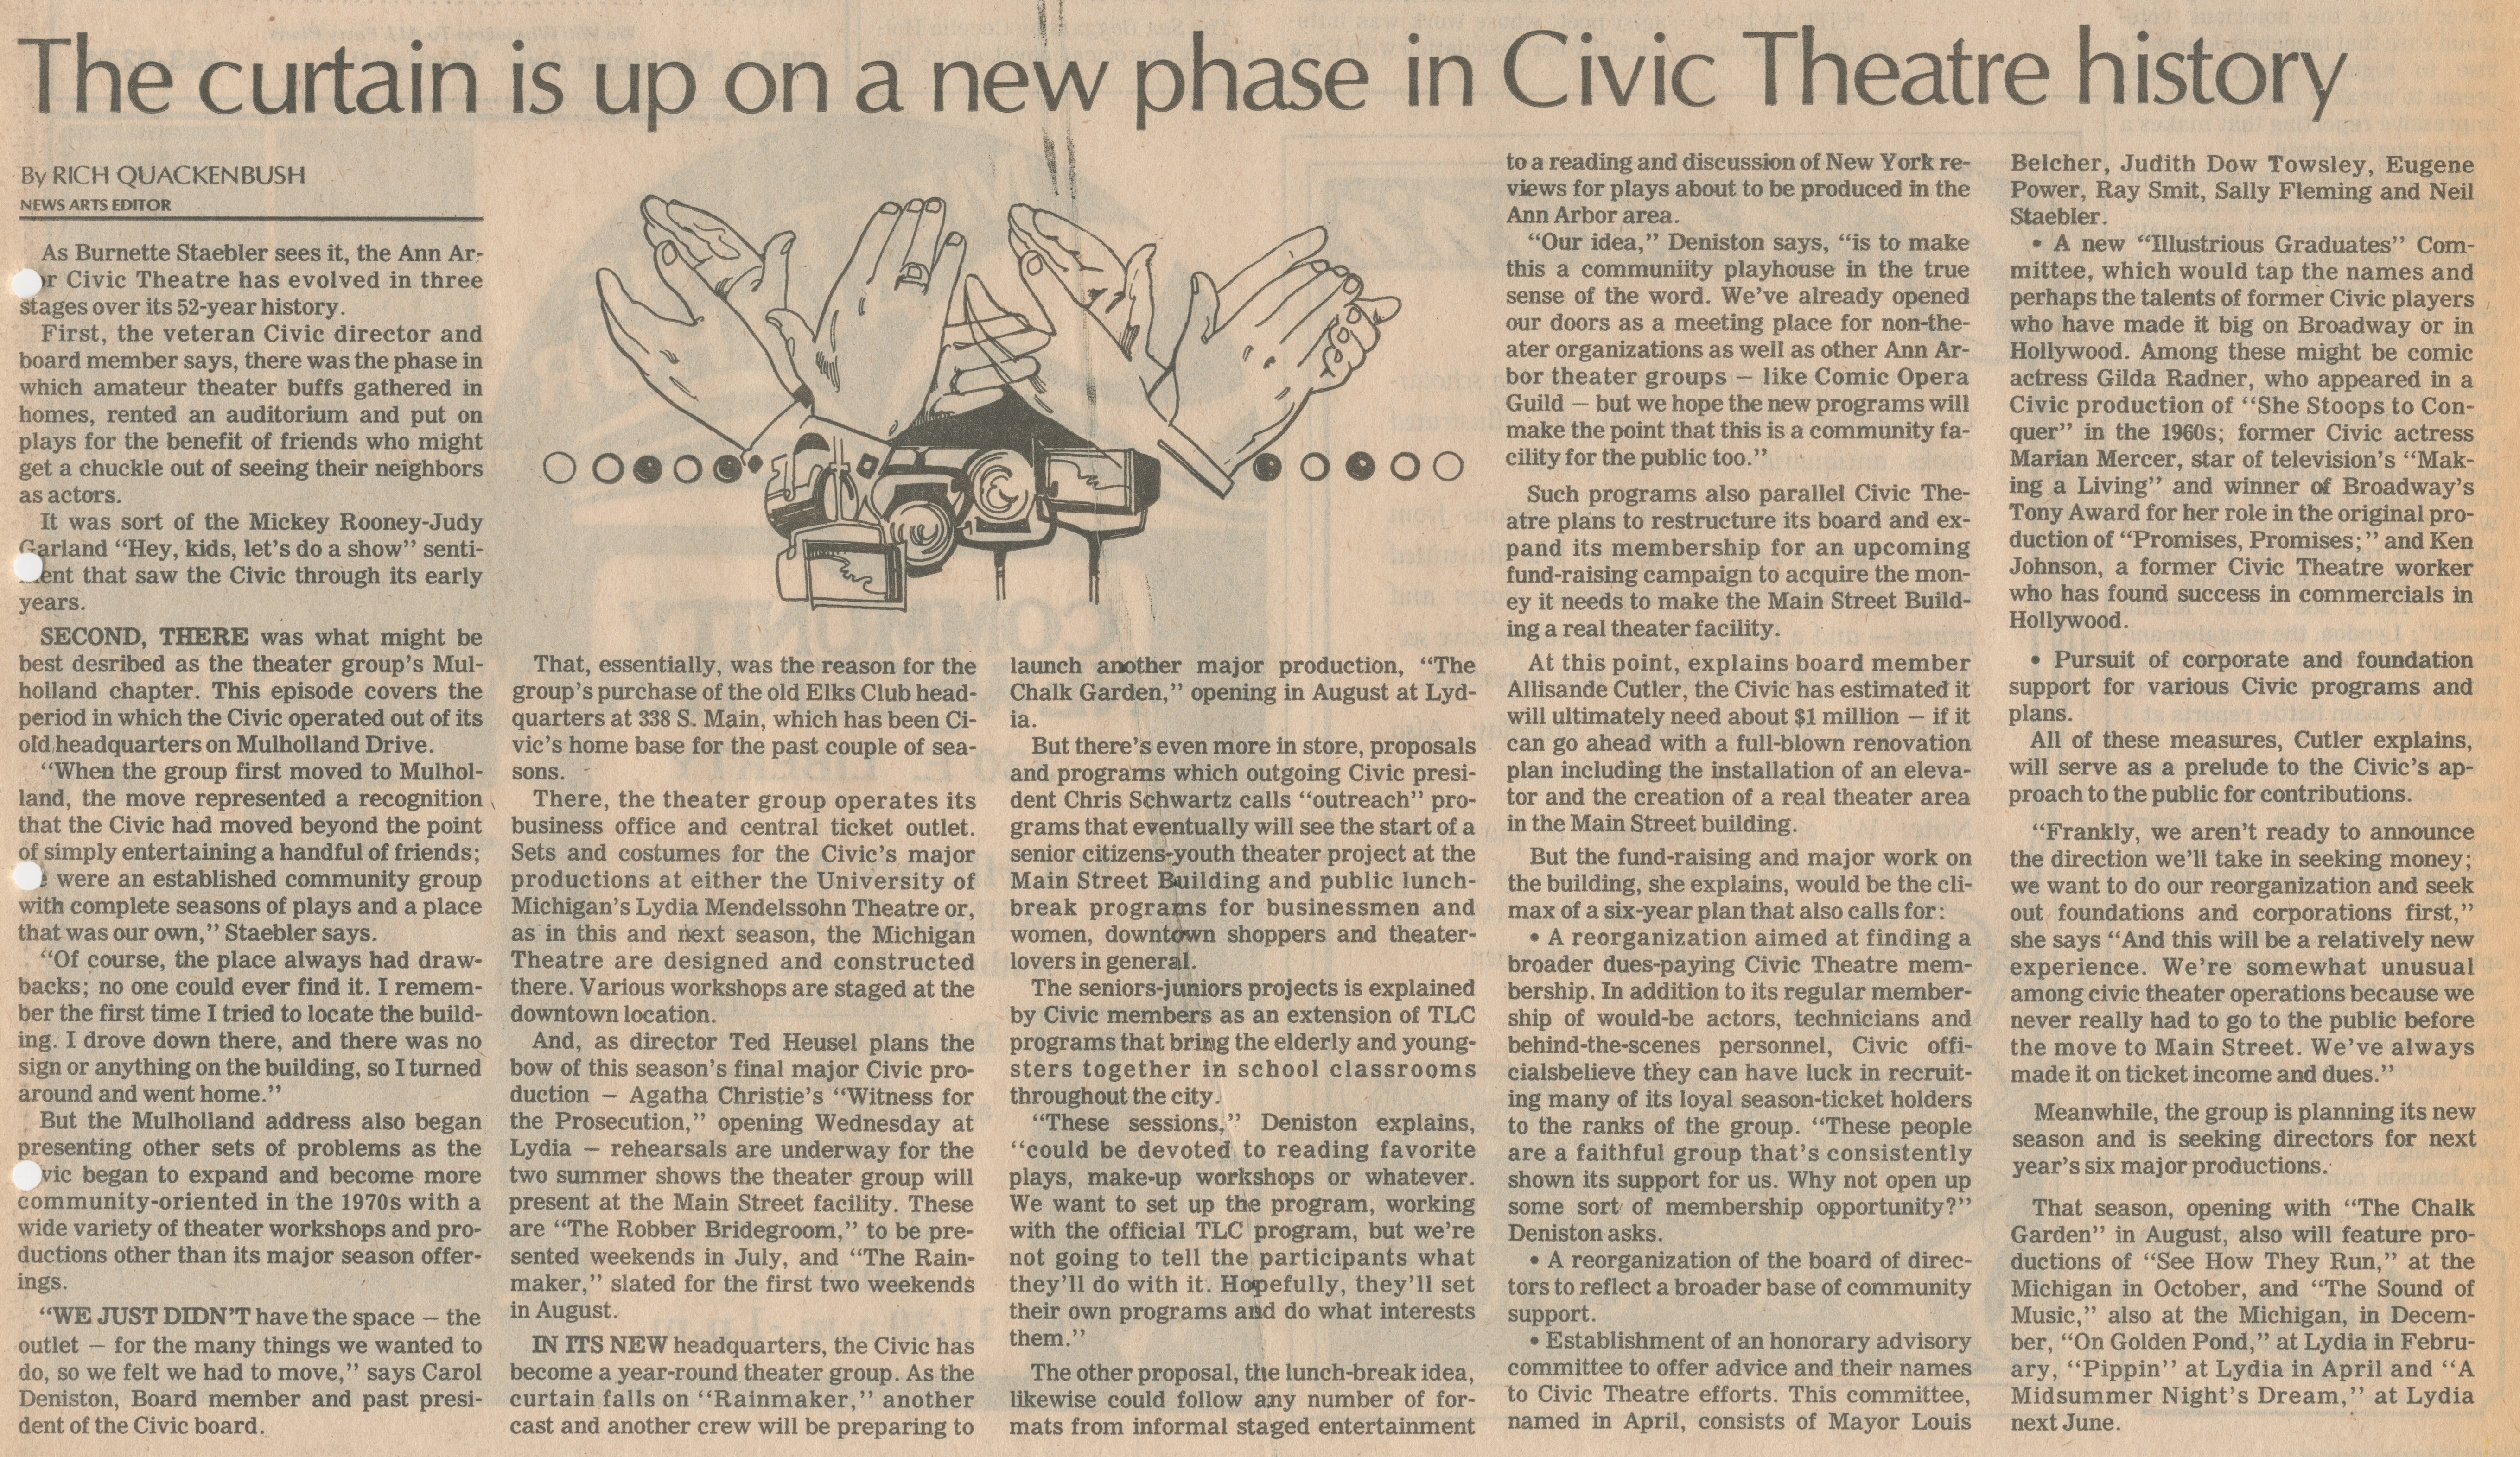 The Curtain I Up On A New Phase In Civic Theatre History image